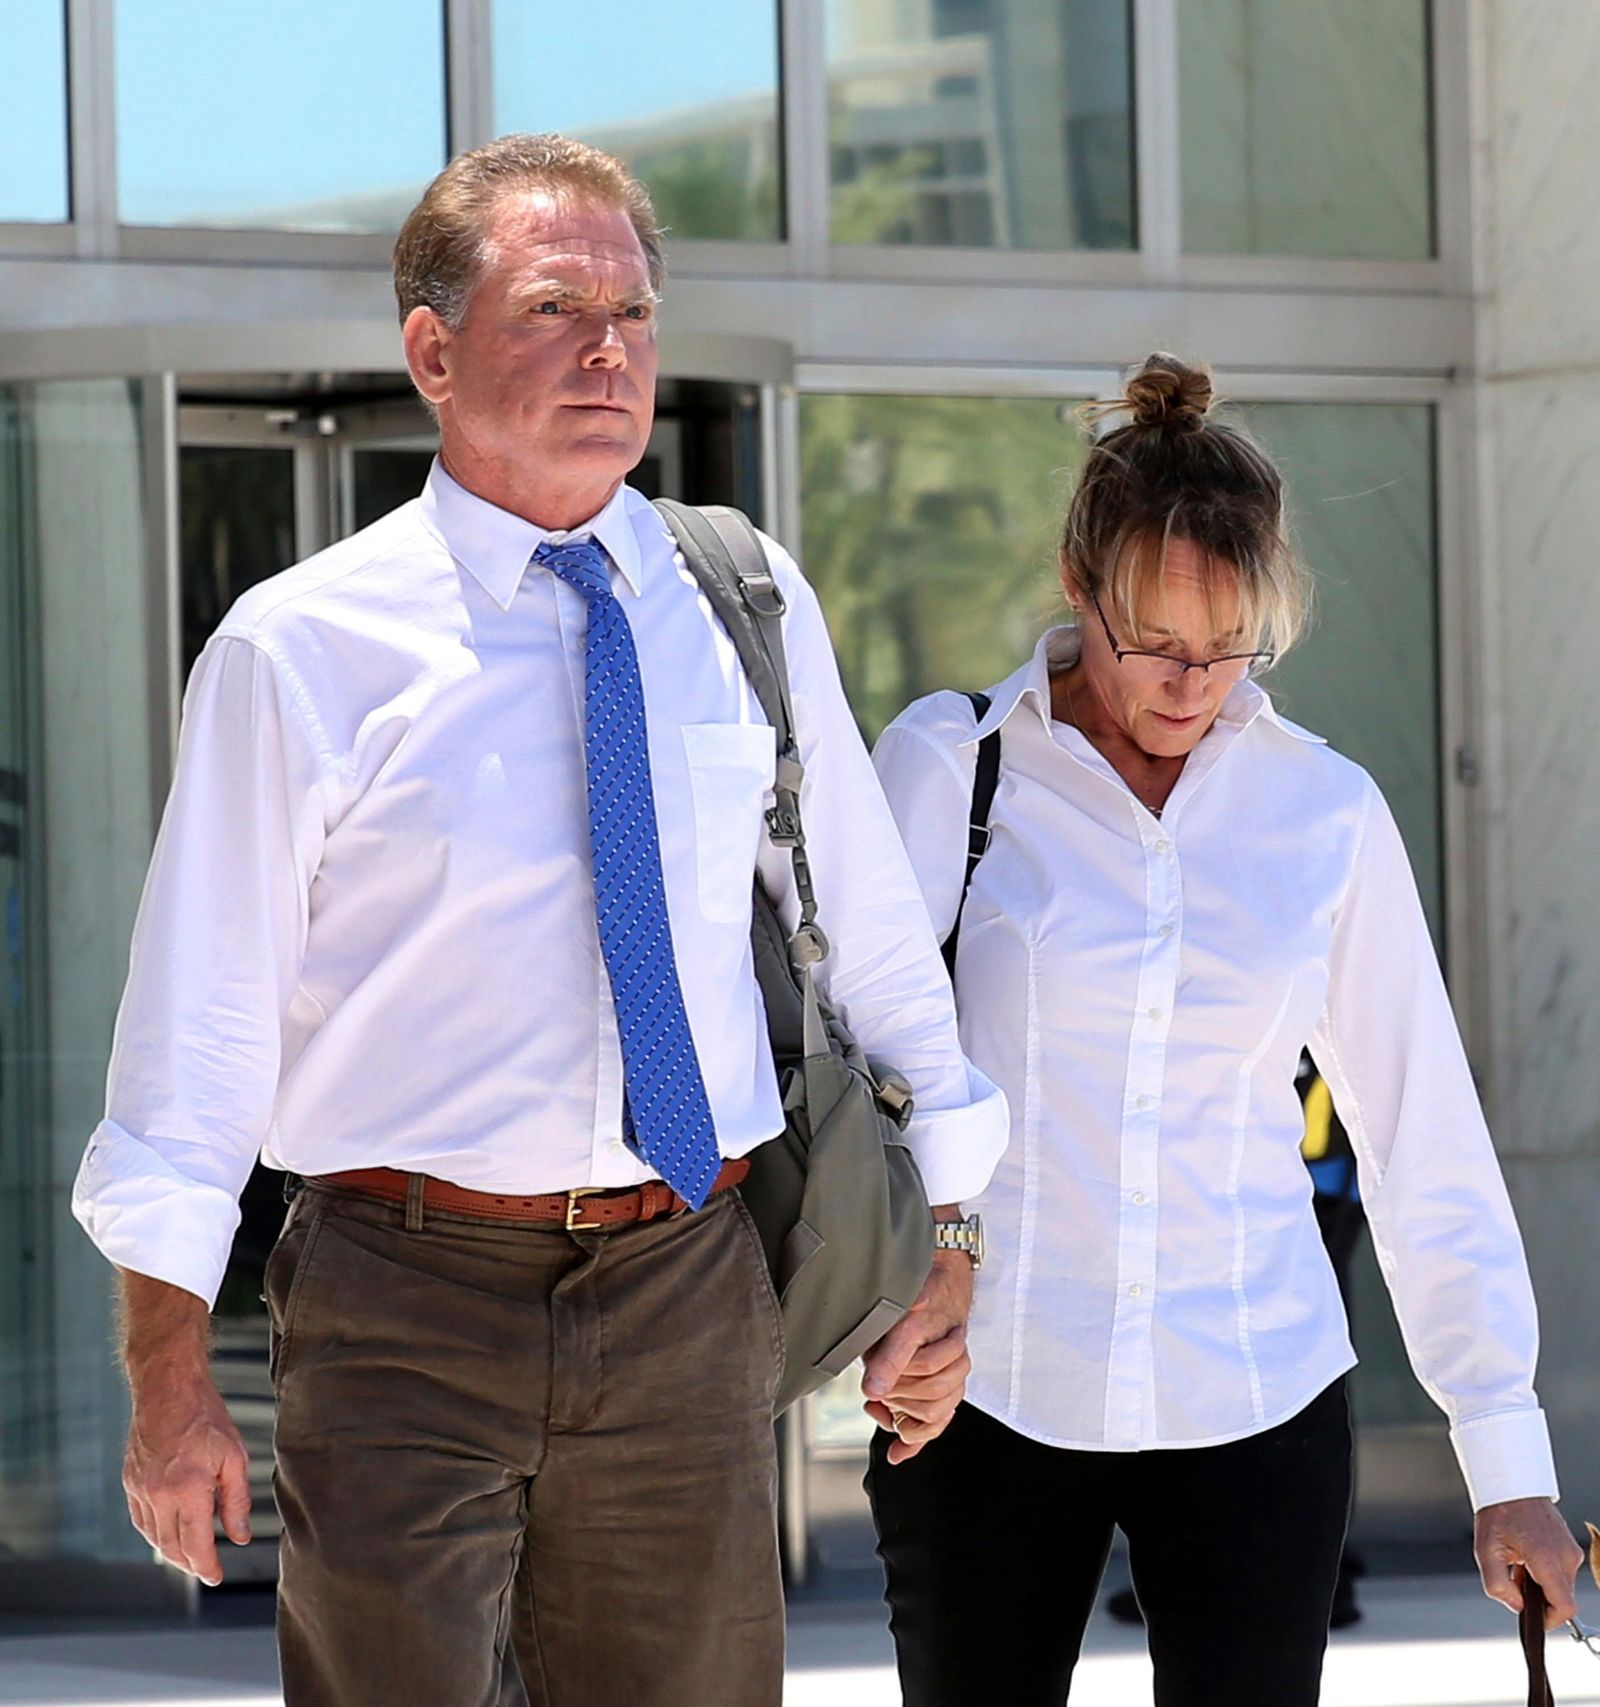 FILE - In this July 10, 2019, file photo, Douglas Haig, left, the Arizona man who sold ammunition to the Route 91 Harvest festival gunman, and his wife, Dori, leave the Lloyd George Federal Courthouse in Las Vegas. Haig is due to plead guilty to illegally manufacturing tracer and armor-piercing bullets found in a high-rise hotel suite from which a gunman carried out the Las Vegas Strip massacre two years earlier. (Bizuayehu Tesfaye/Las Vegas Review-Journal via AP, File)